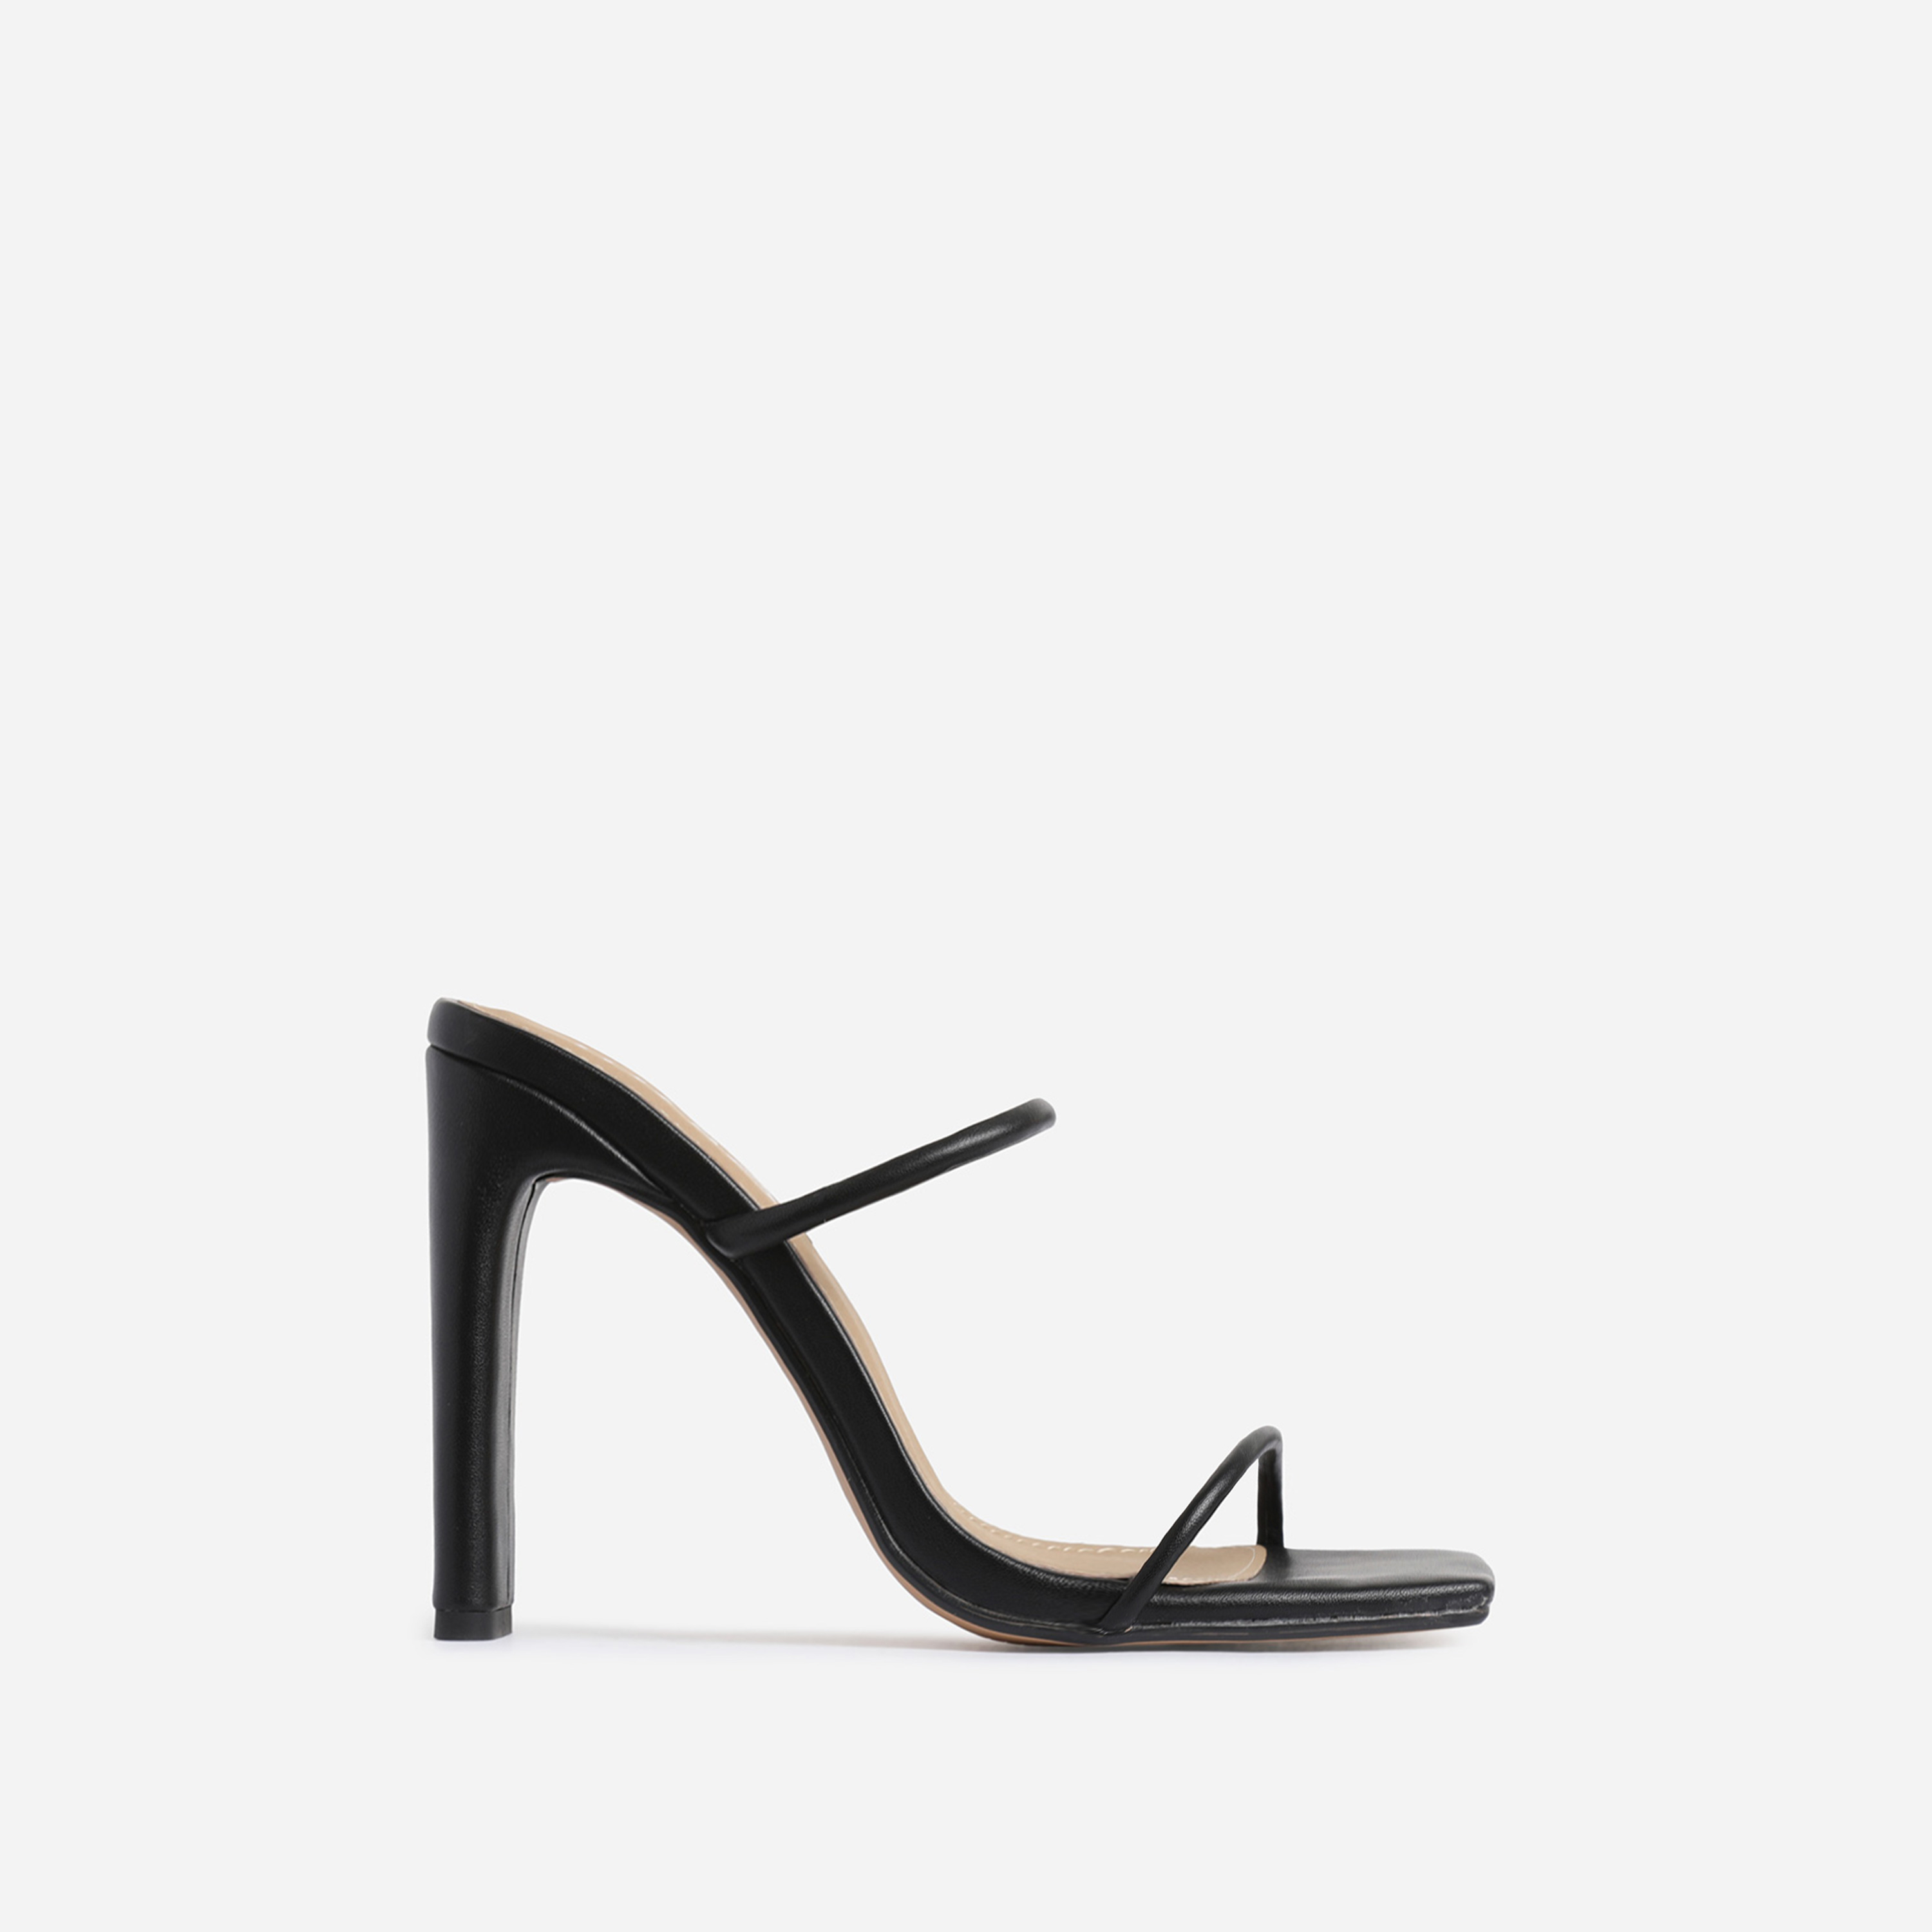 Highland Barely There Square Toe Heel Mule In Black Faux Leather